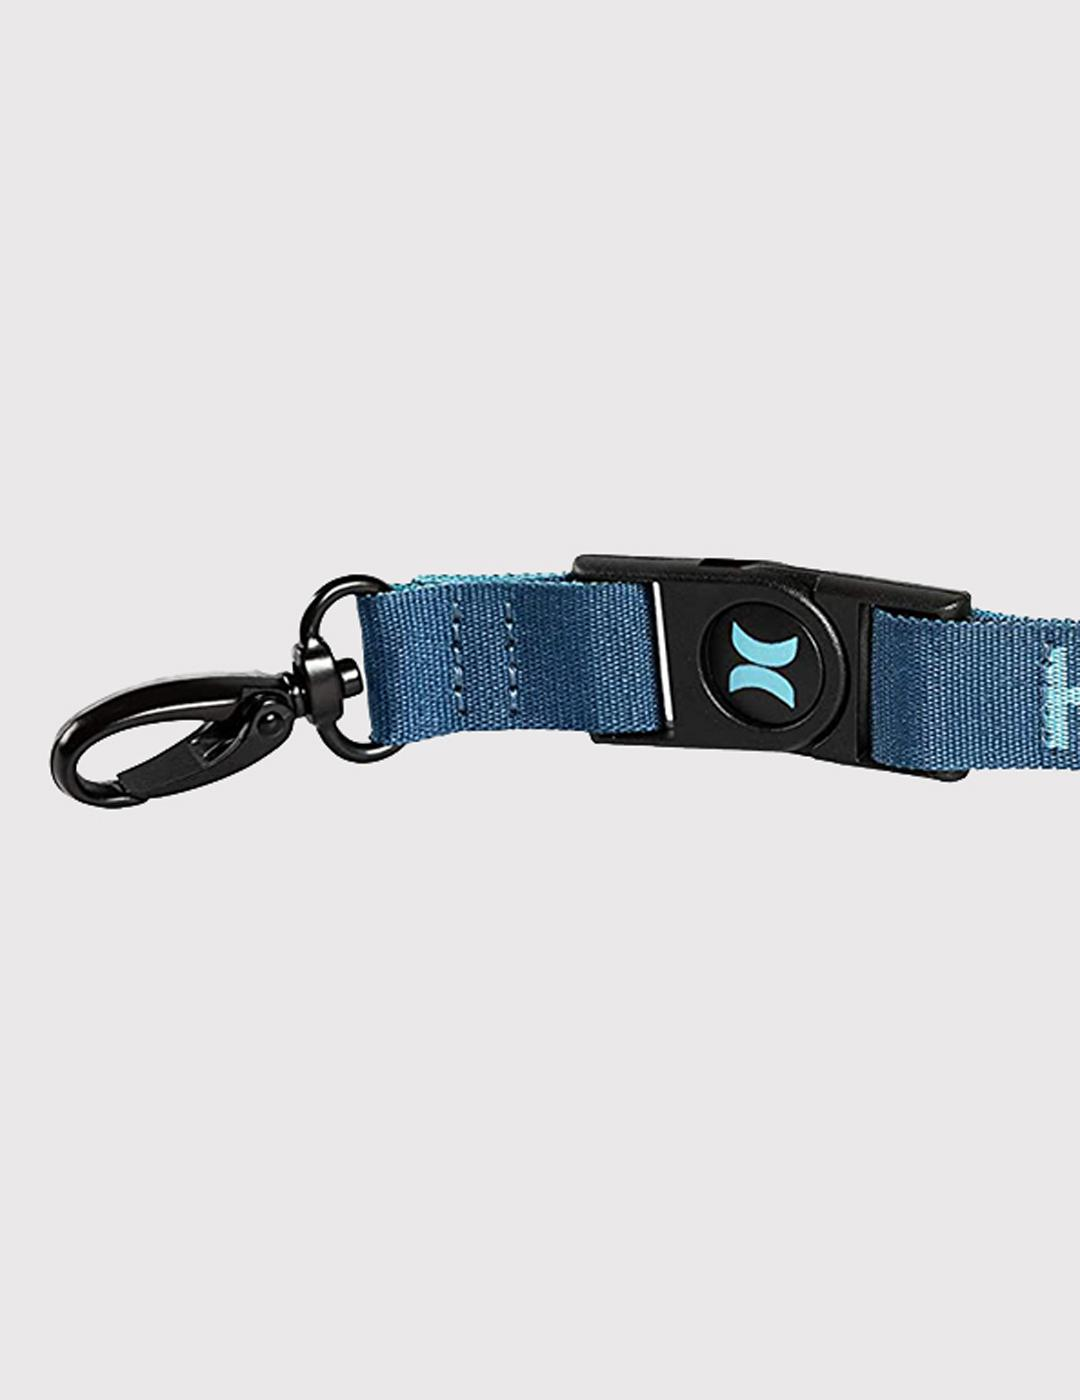 Llavero O-O LANYARD - BLUE FORCE